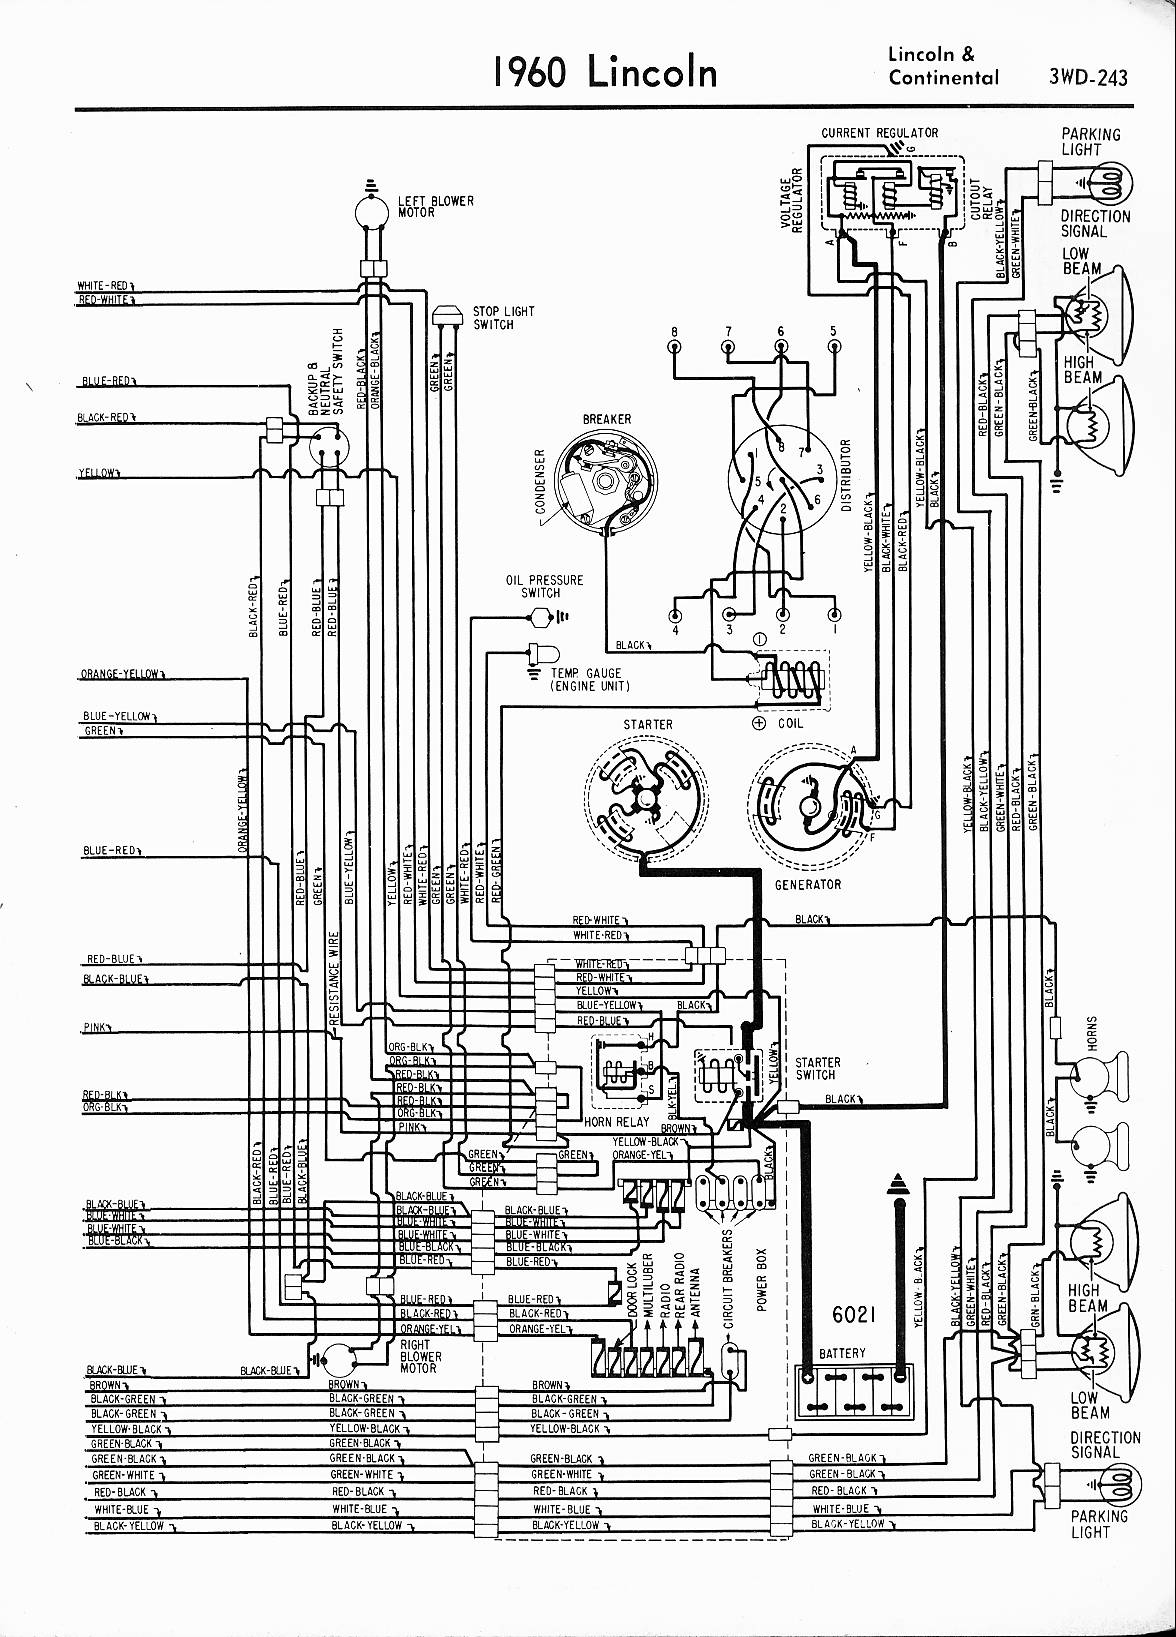 1960 Lincoln Wiring Diagram Ford Thunderbird Diagrams 1957 1965 Rh Oldcarmanualproject Com Schematic 1999 Continental